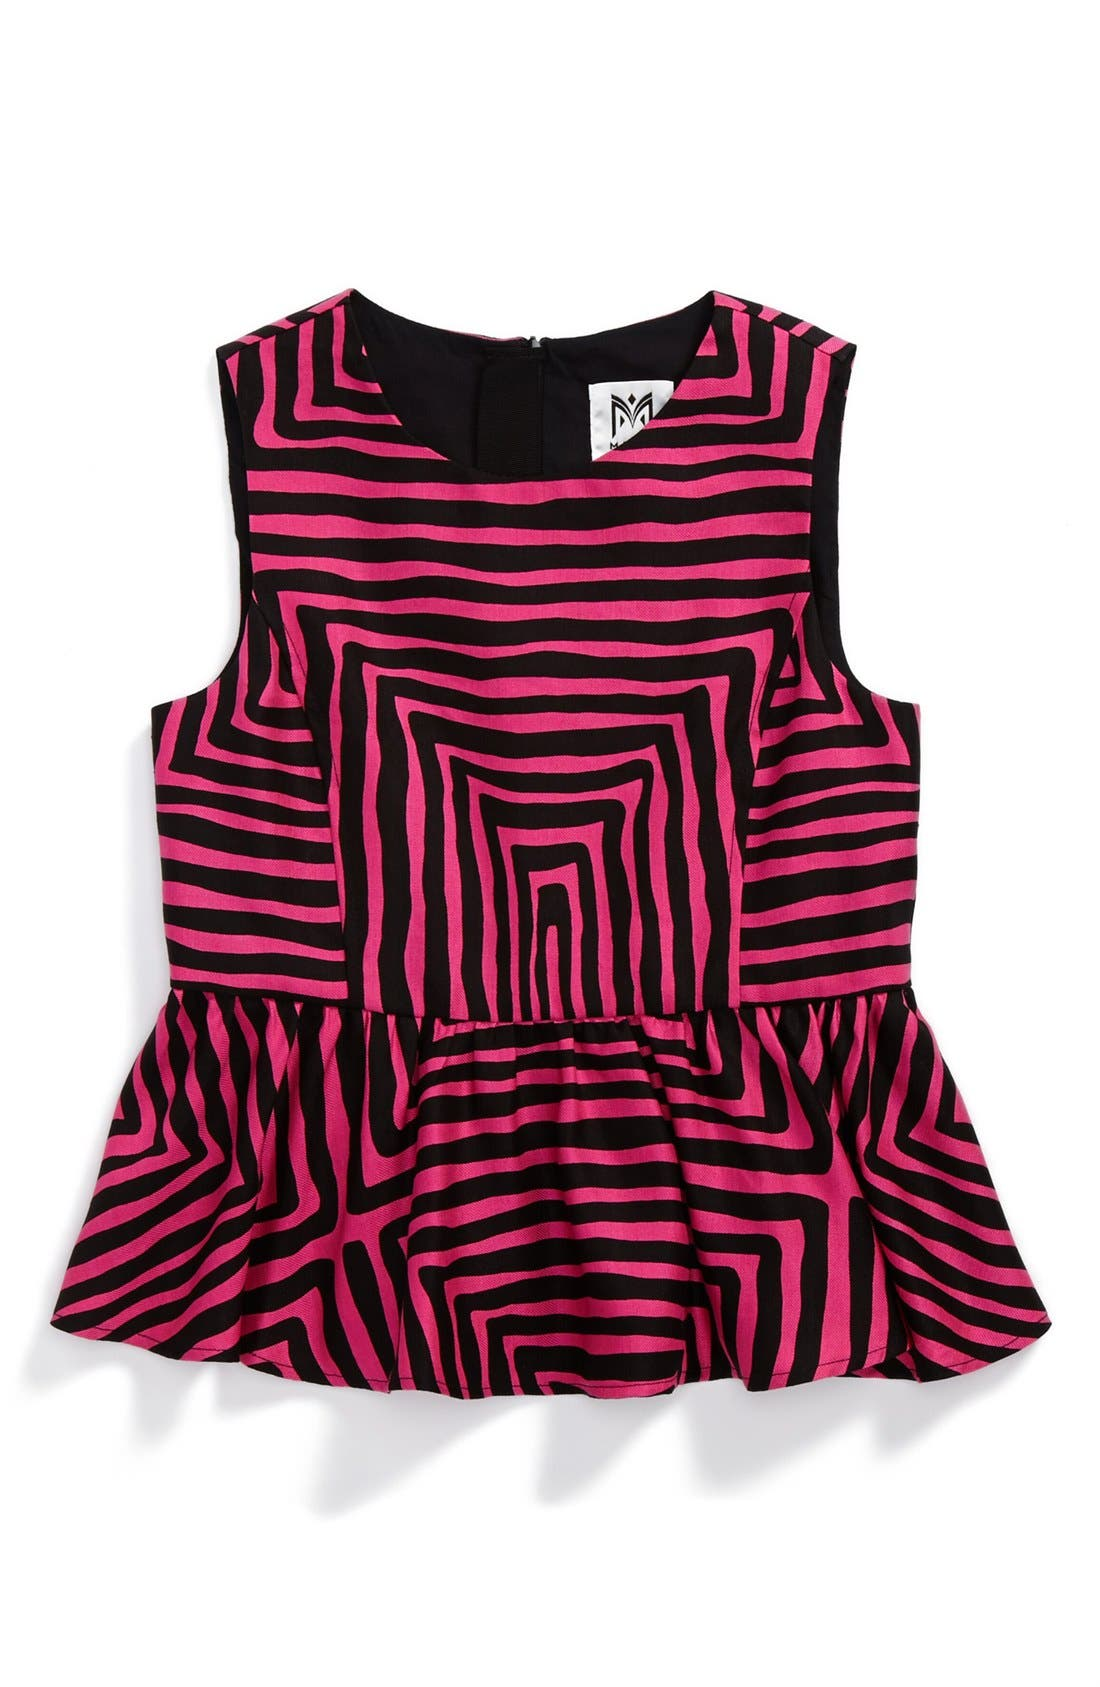 Main Image - Milly Minis 'Pippa' Peplum Top (Toddler Girls, Little Girls & Big Girls)